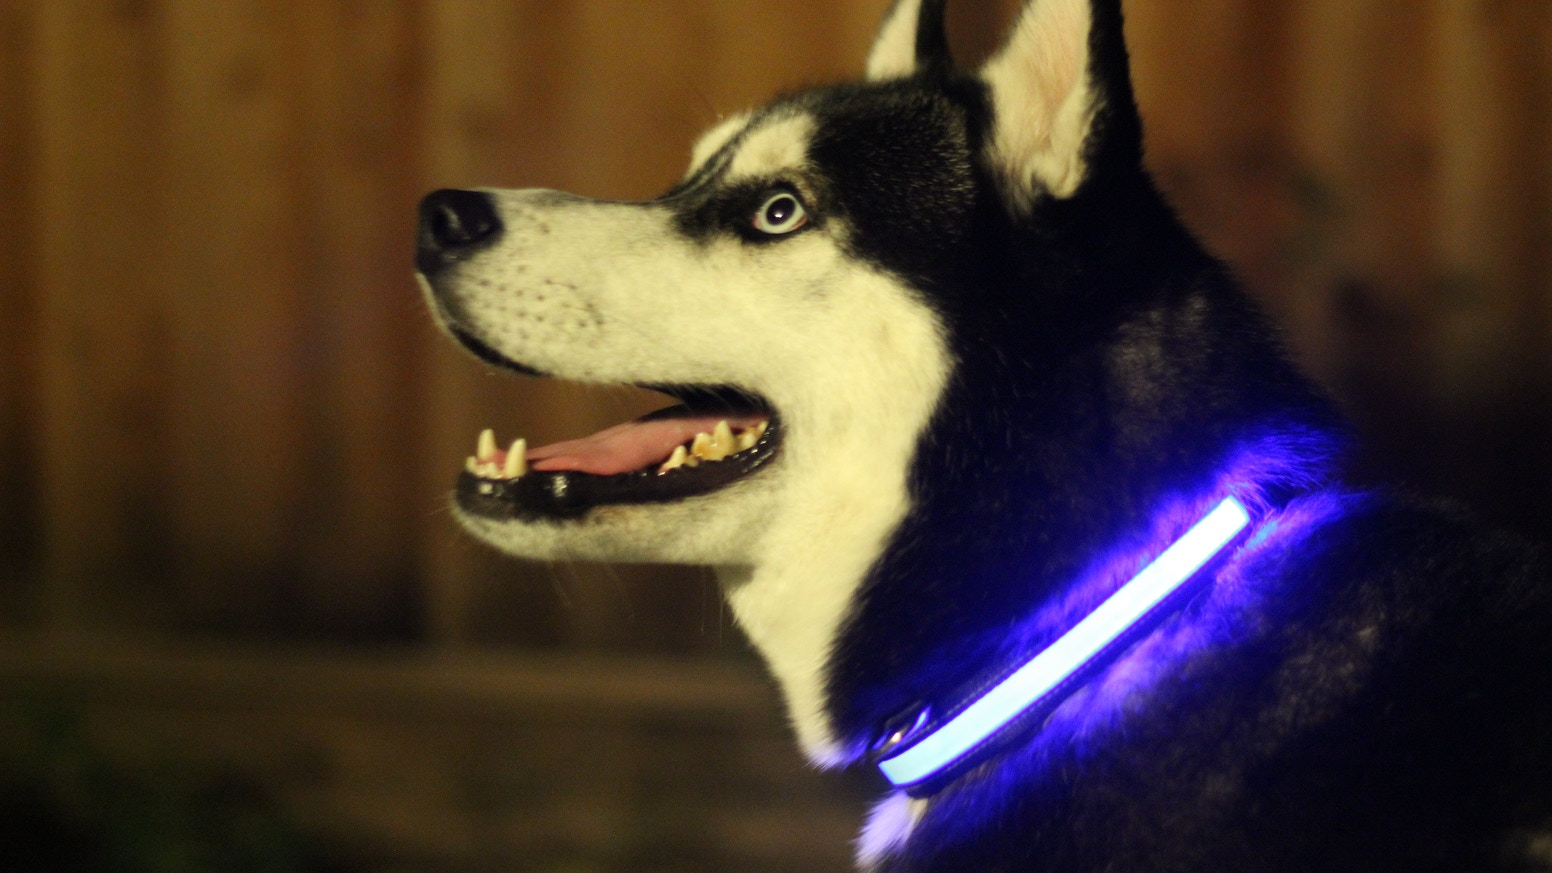 Mission: SAVE LIVES. HALO MINI is an illuminated collar for our best friends. BE SEEN, BE SAFE!